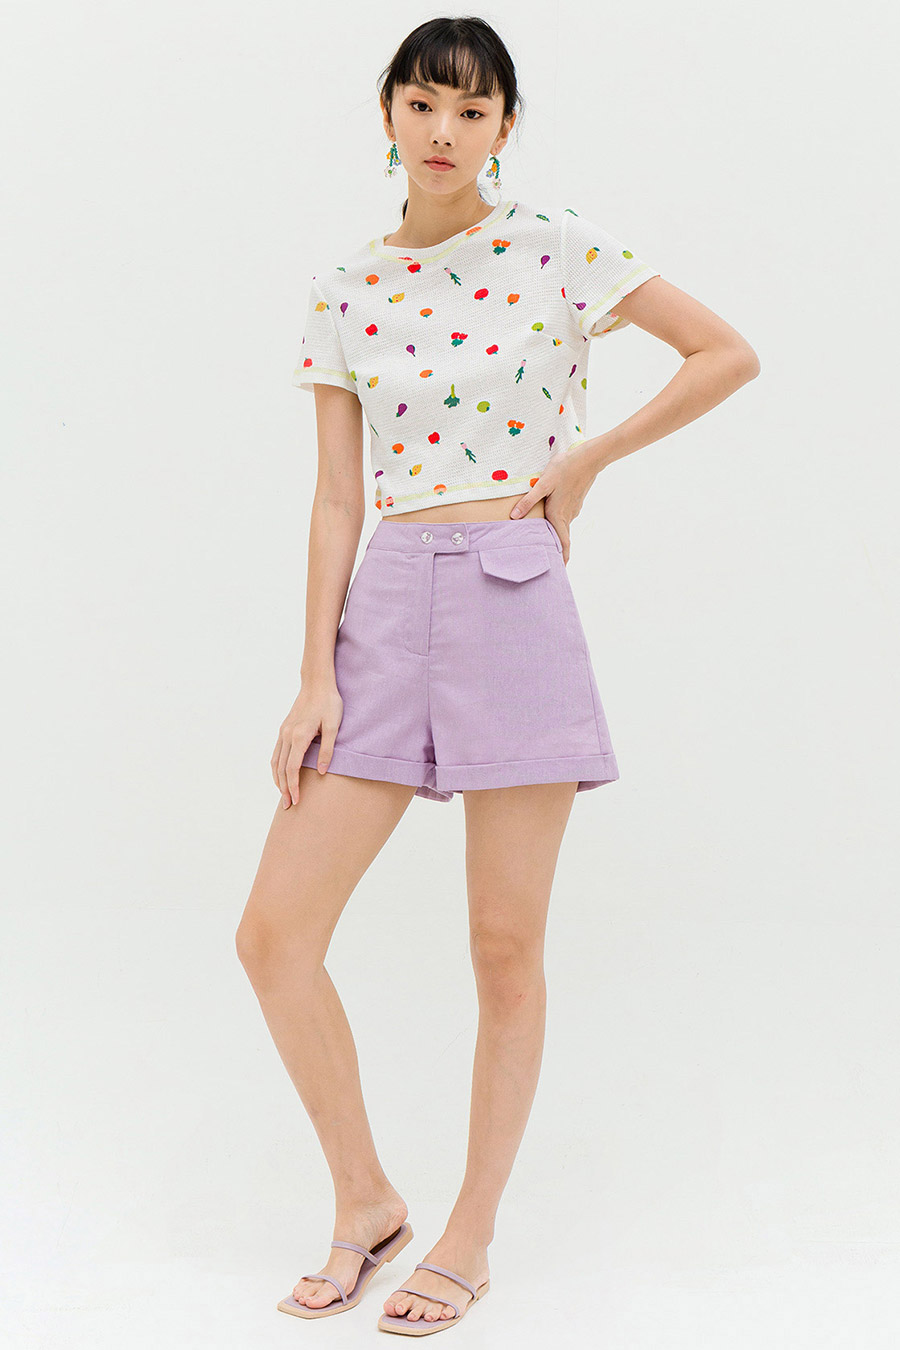 *RESTOCKED* LARA TOP - FRUIT LOOP